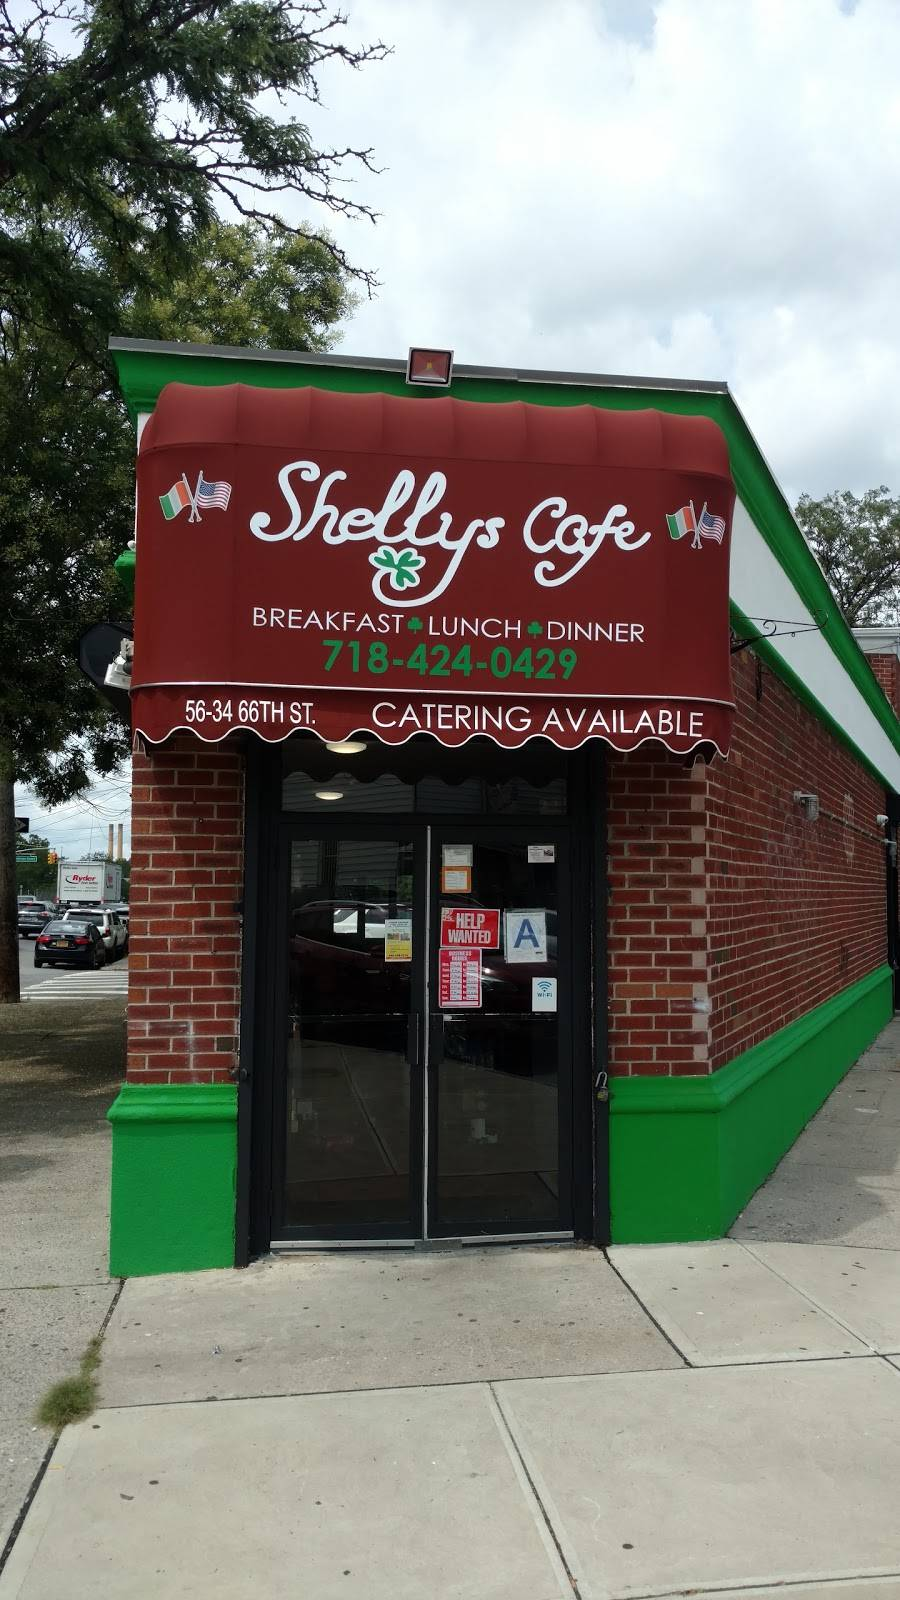 Shellys Deli and Cafe | restaurant | 5634 66th St, Maspeth, NY 11378, USA | 7184240429 OR +1 718-424-0429